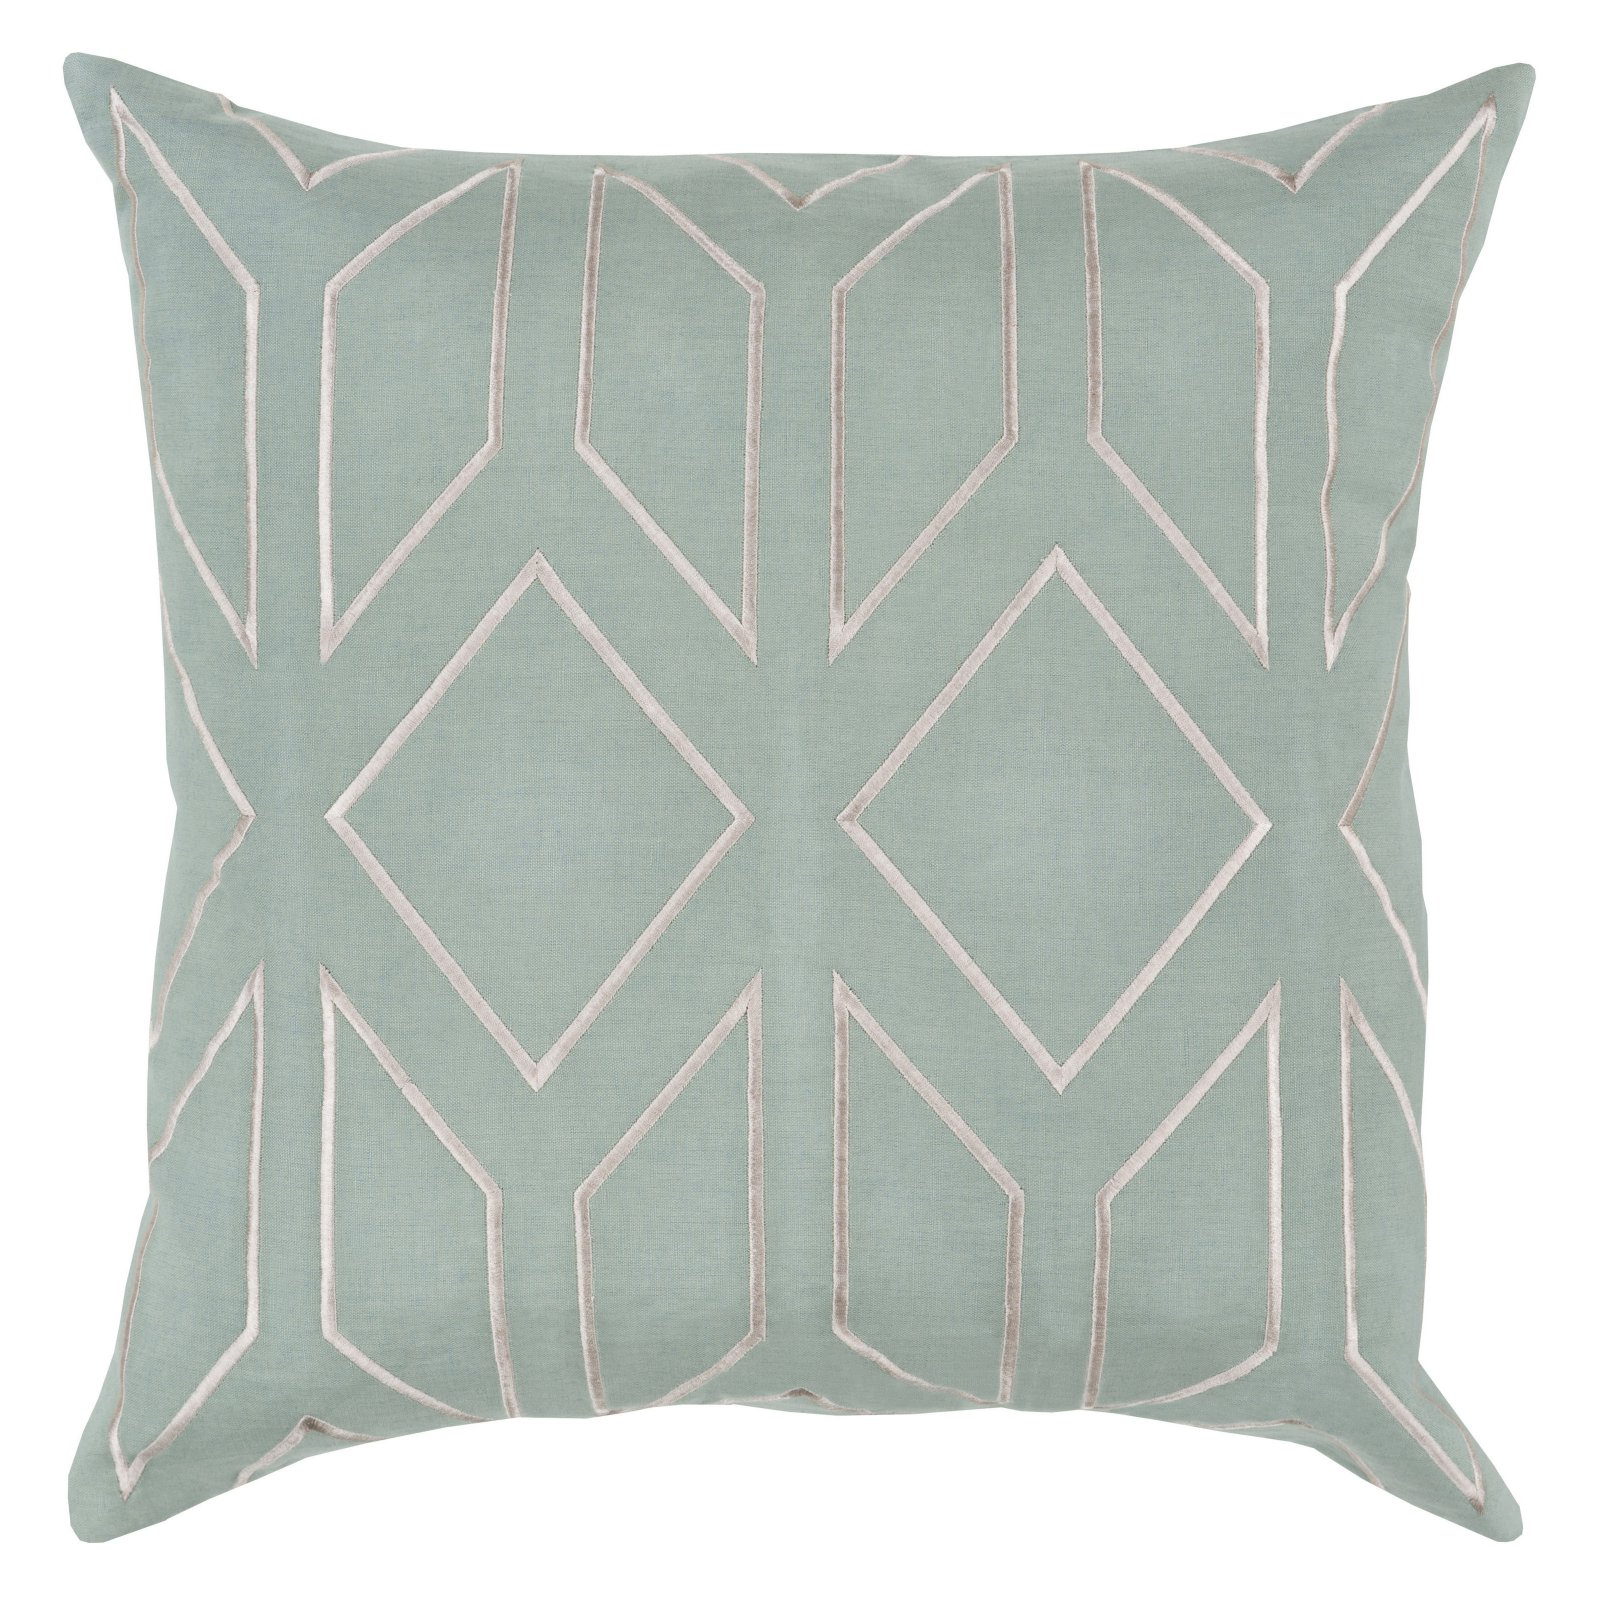 Surya Skyline IV Decorative Throw Pillow